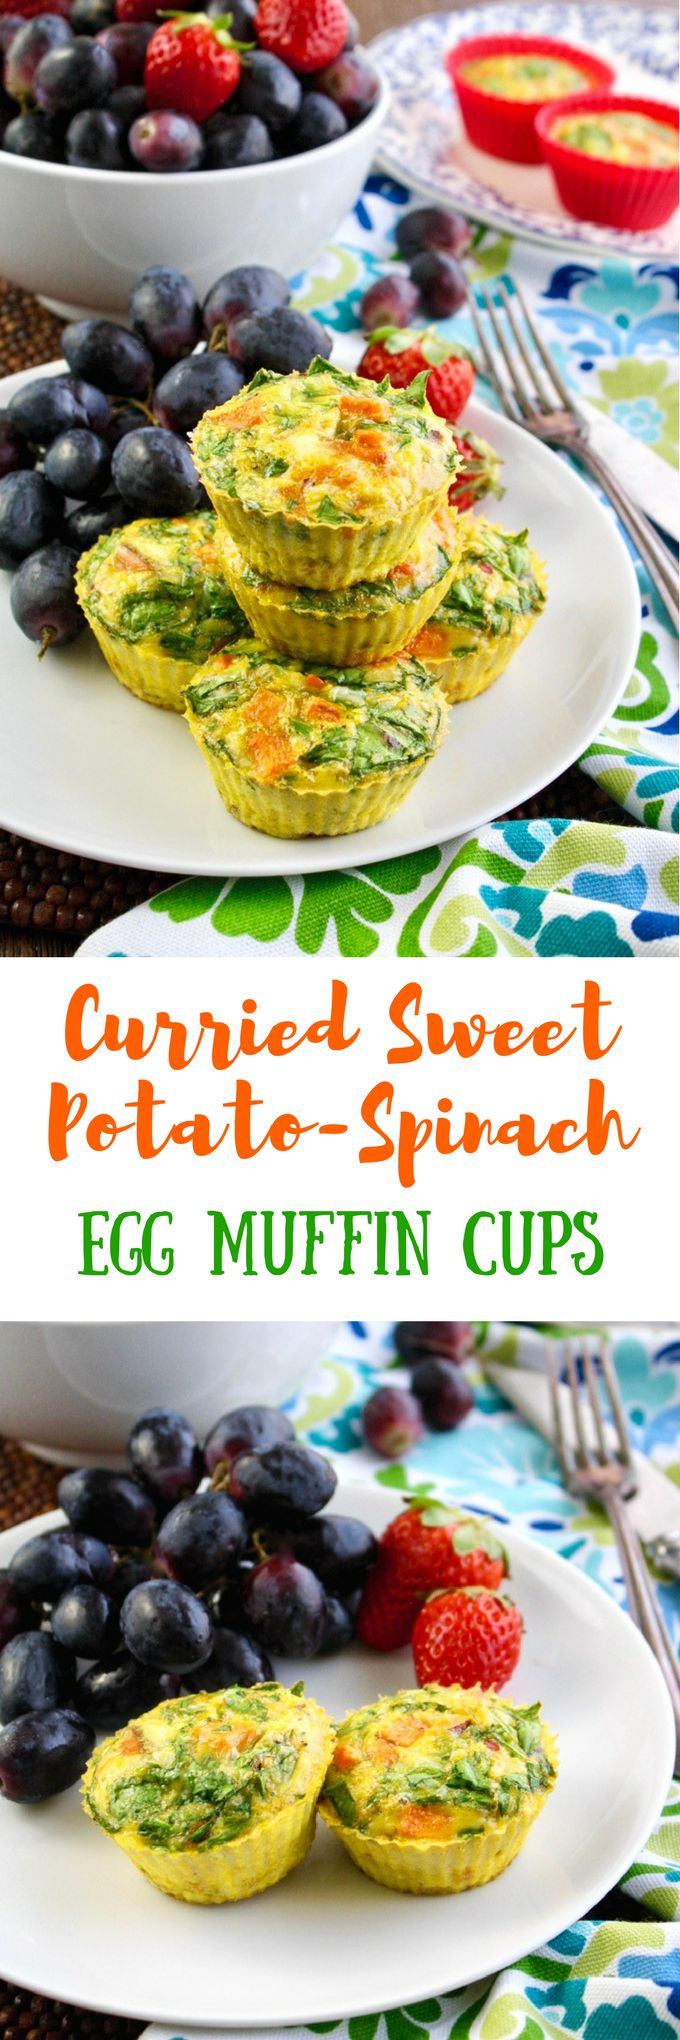 Curried Sweet Potato-Spinach Egg Muffin Cups are easy to make! These goodies are gluten free, and vegetarian, too.